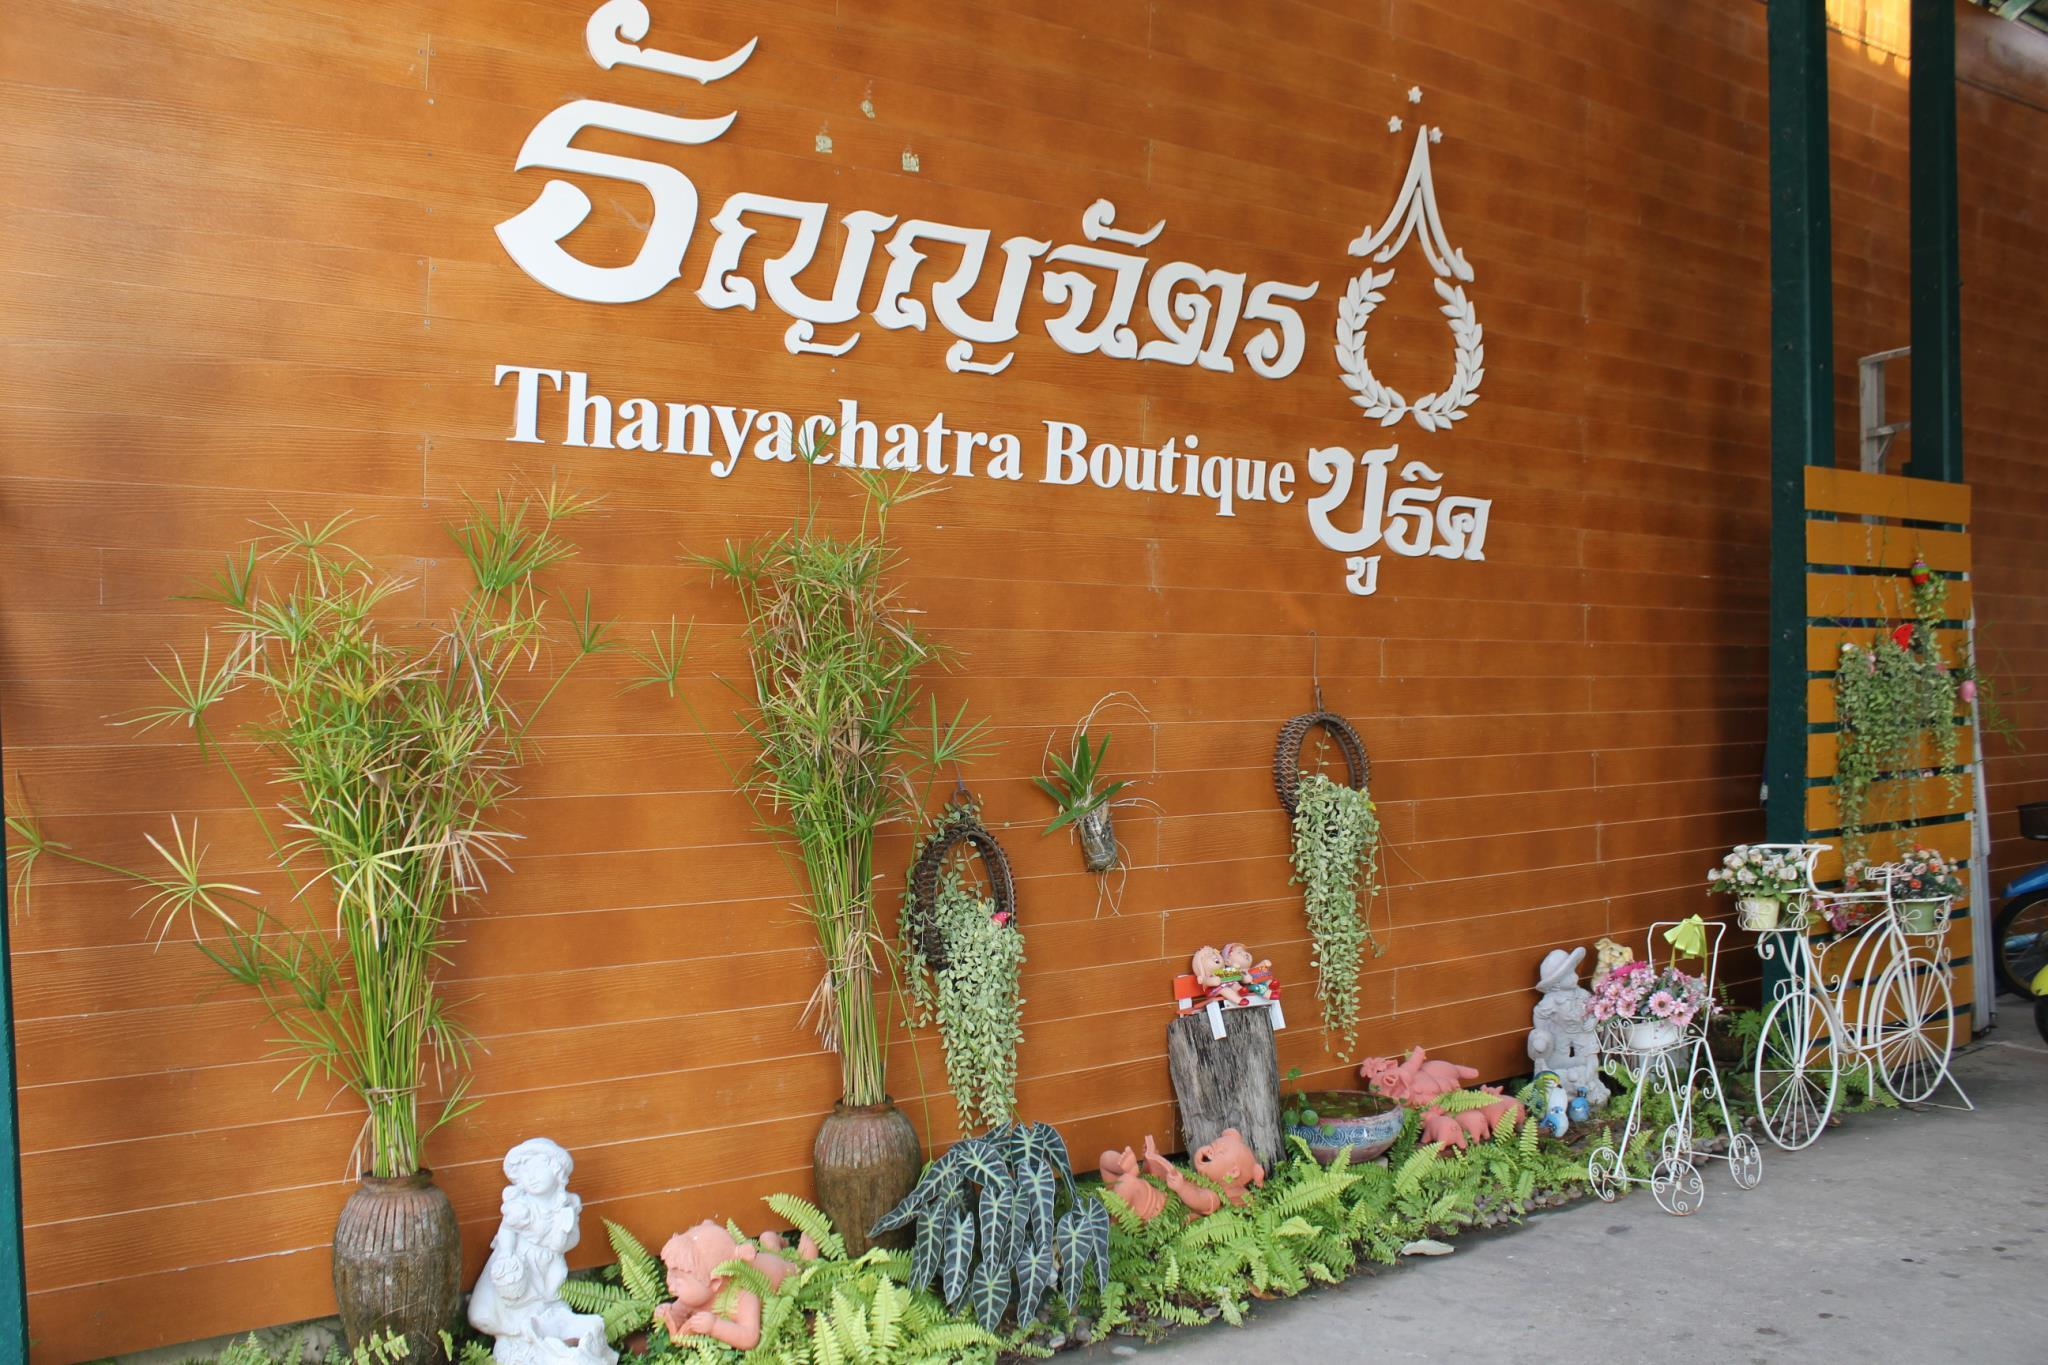 ,Thanyachatra Boutique.